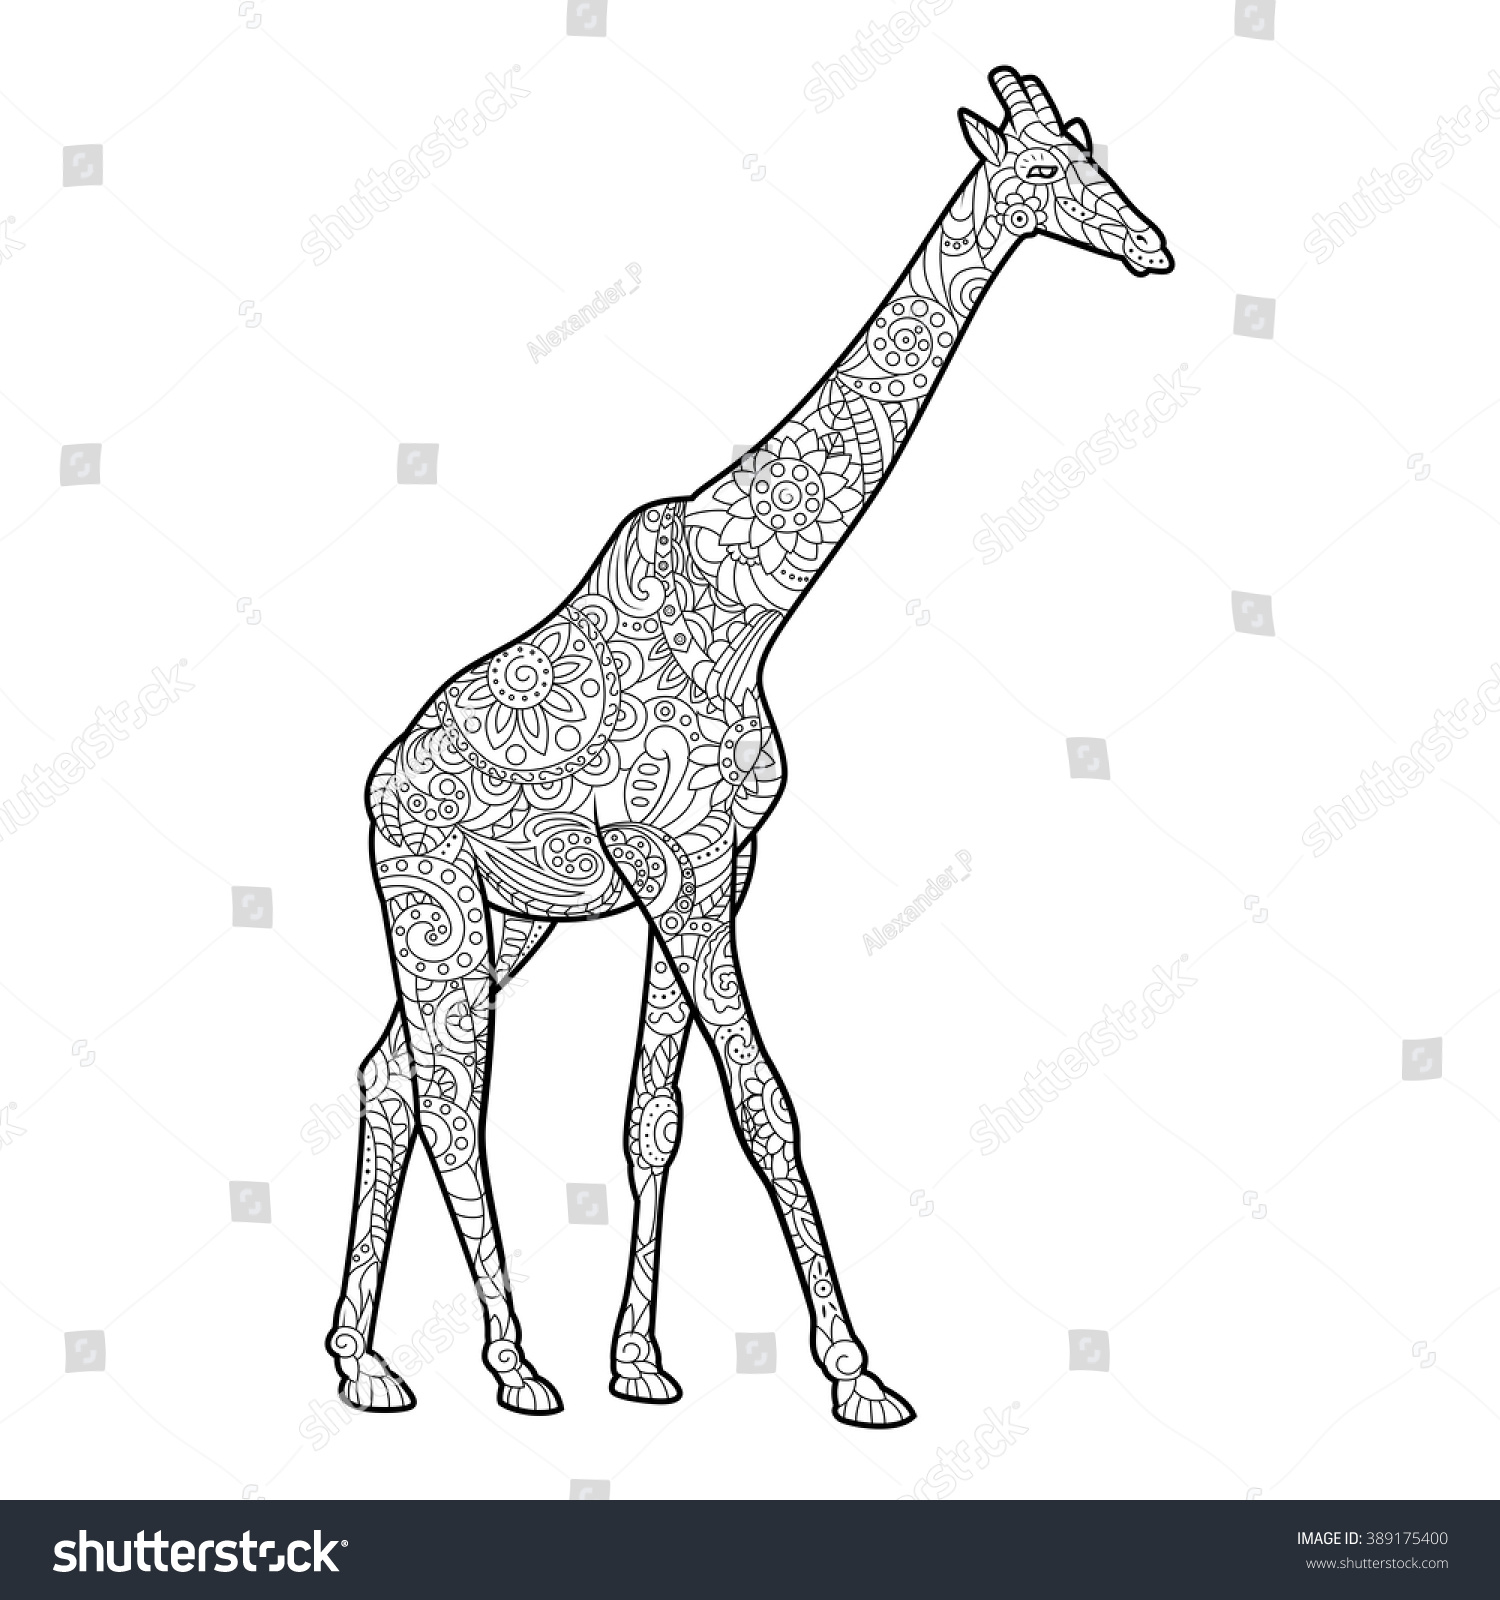 Giraffe coloring book for adults vector illustration. Anti-stress coloring  for adult. Zentangle